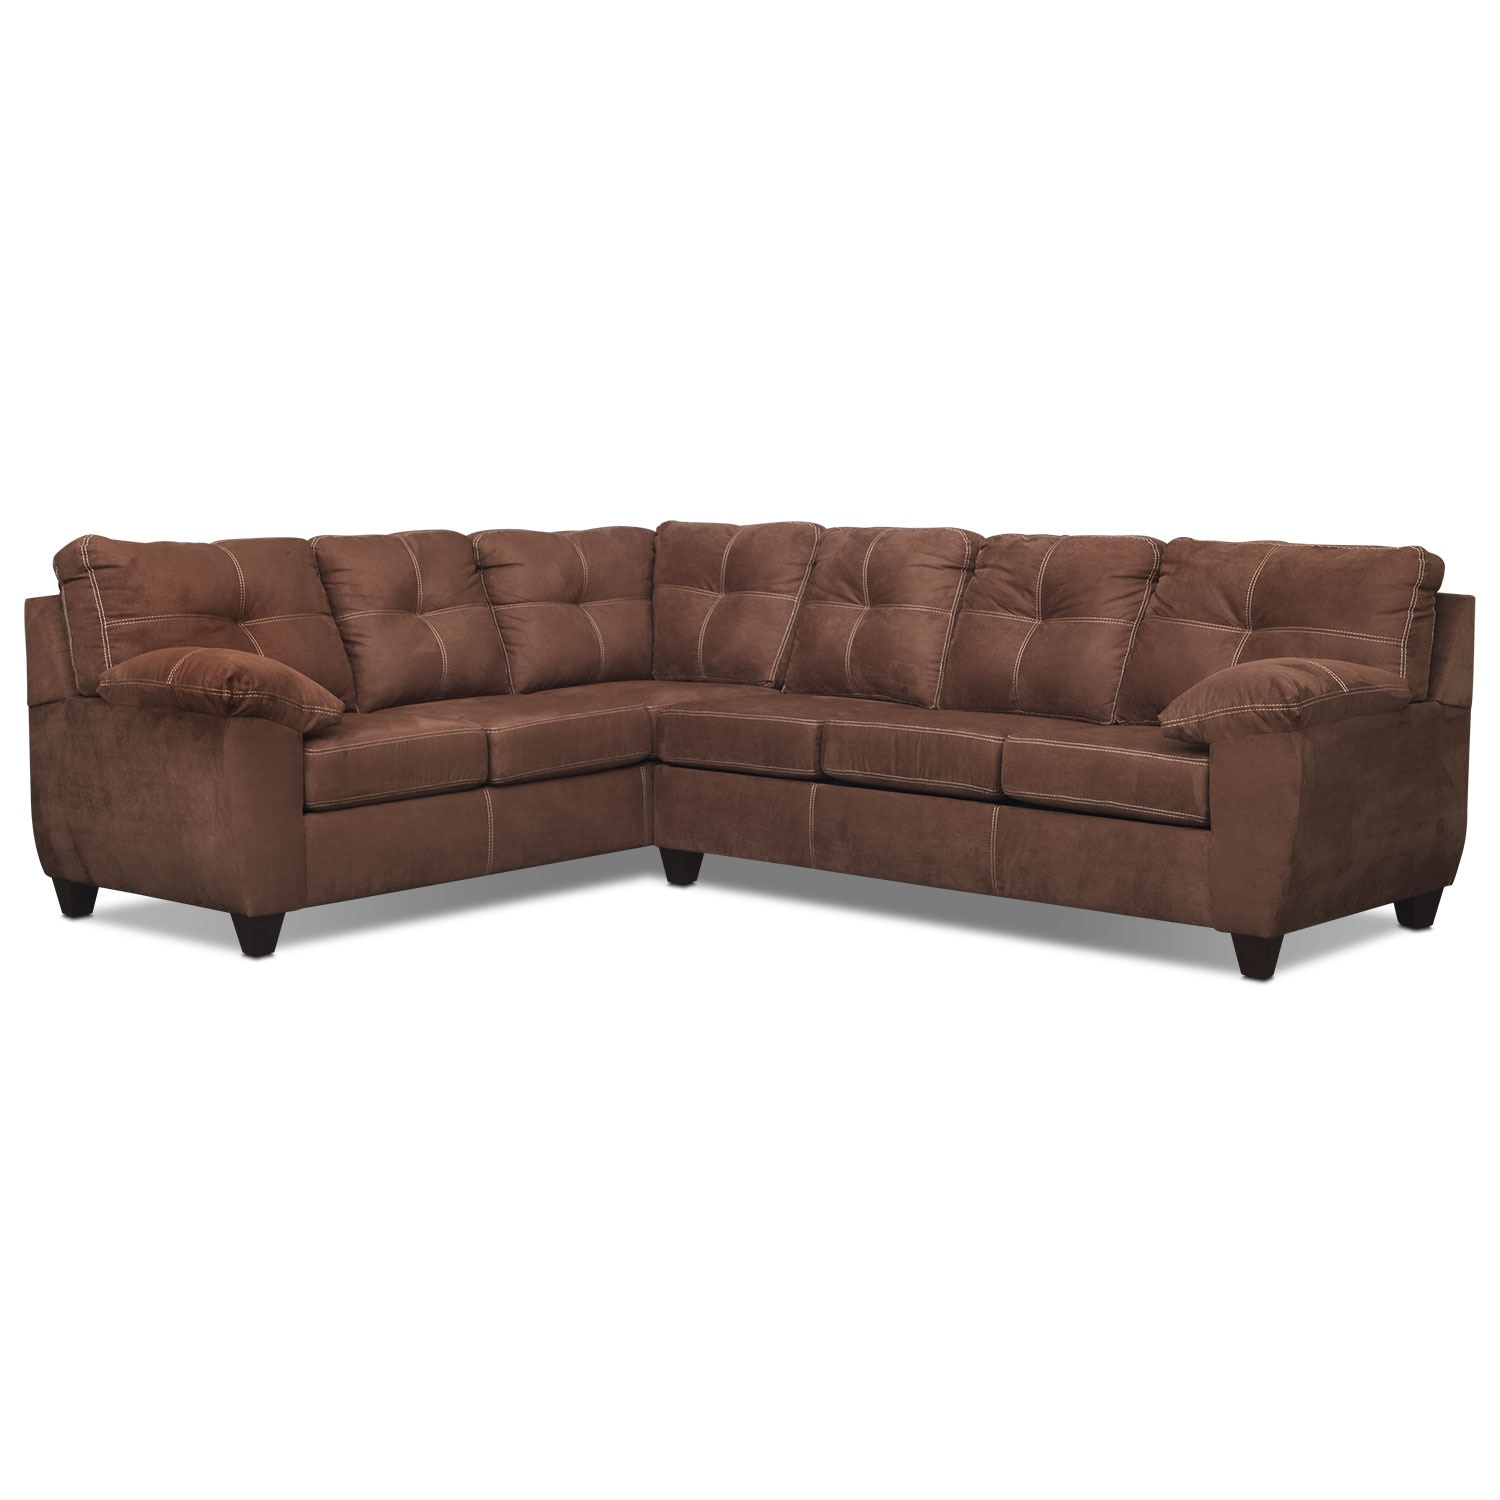 Rialto Coffee 2 Pc. Sectional with Right-Facing Memory Foam Sleeper